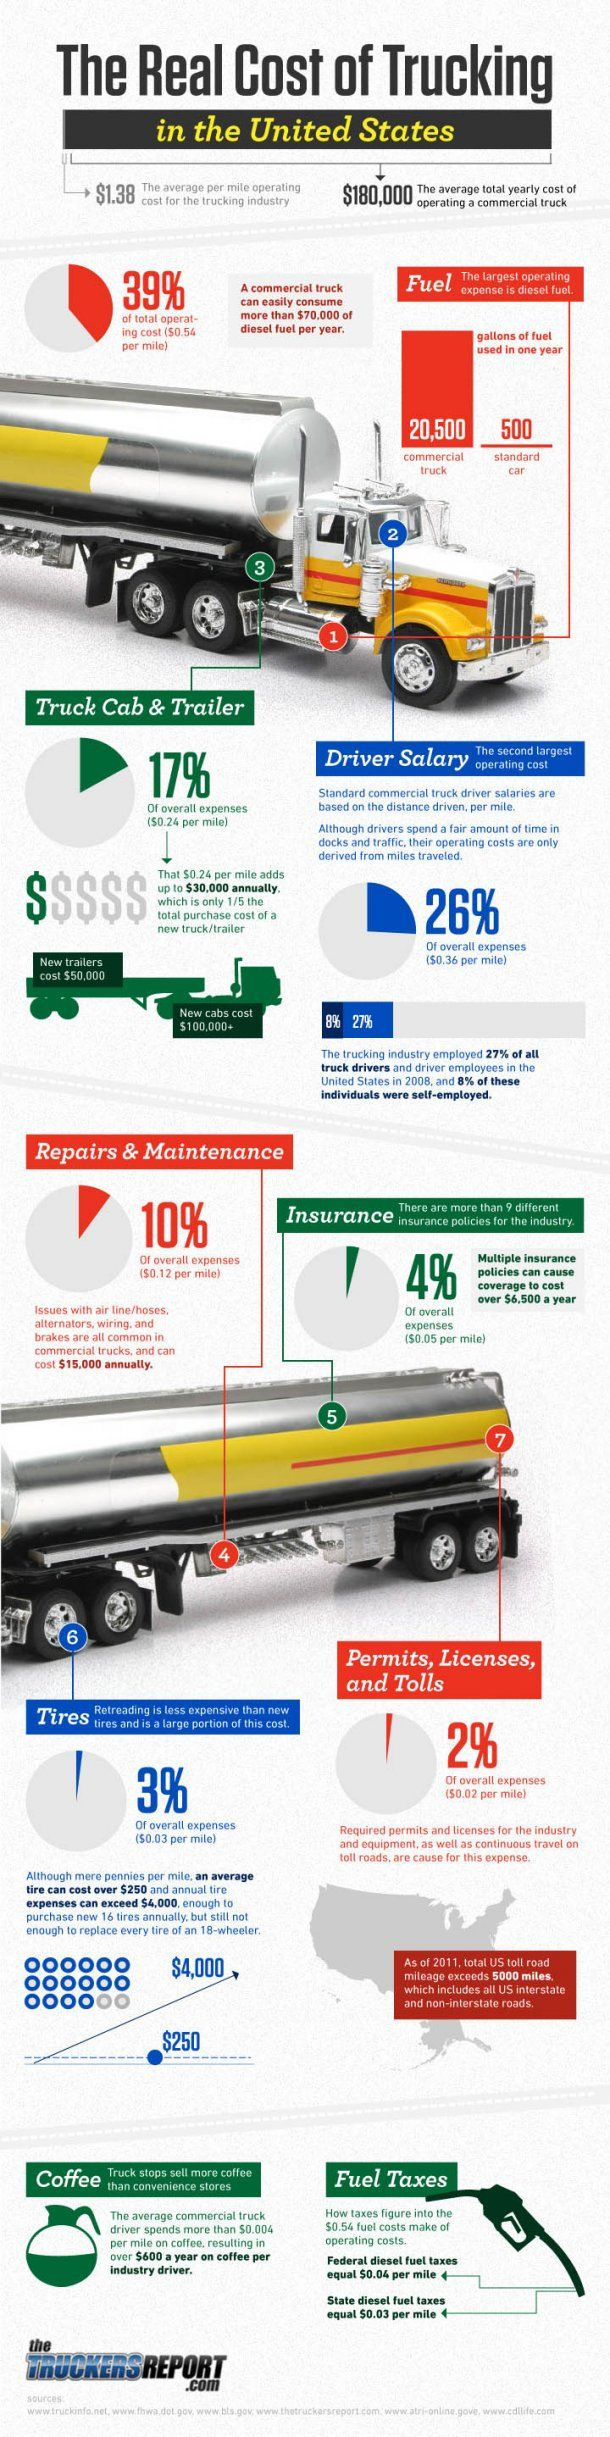 The Real Cost Of Trucking In The US #infograohic